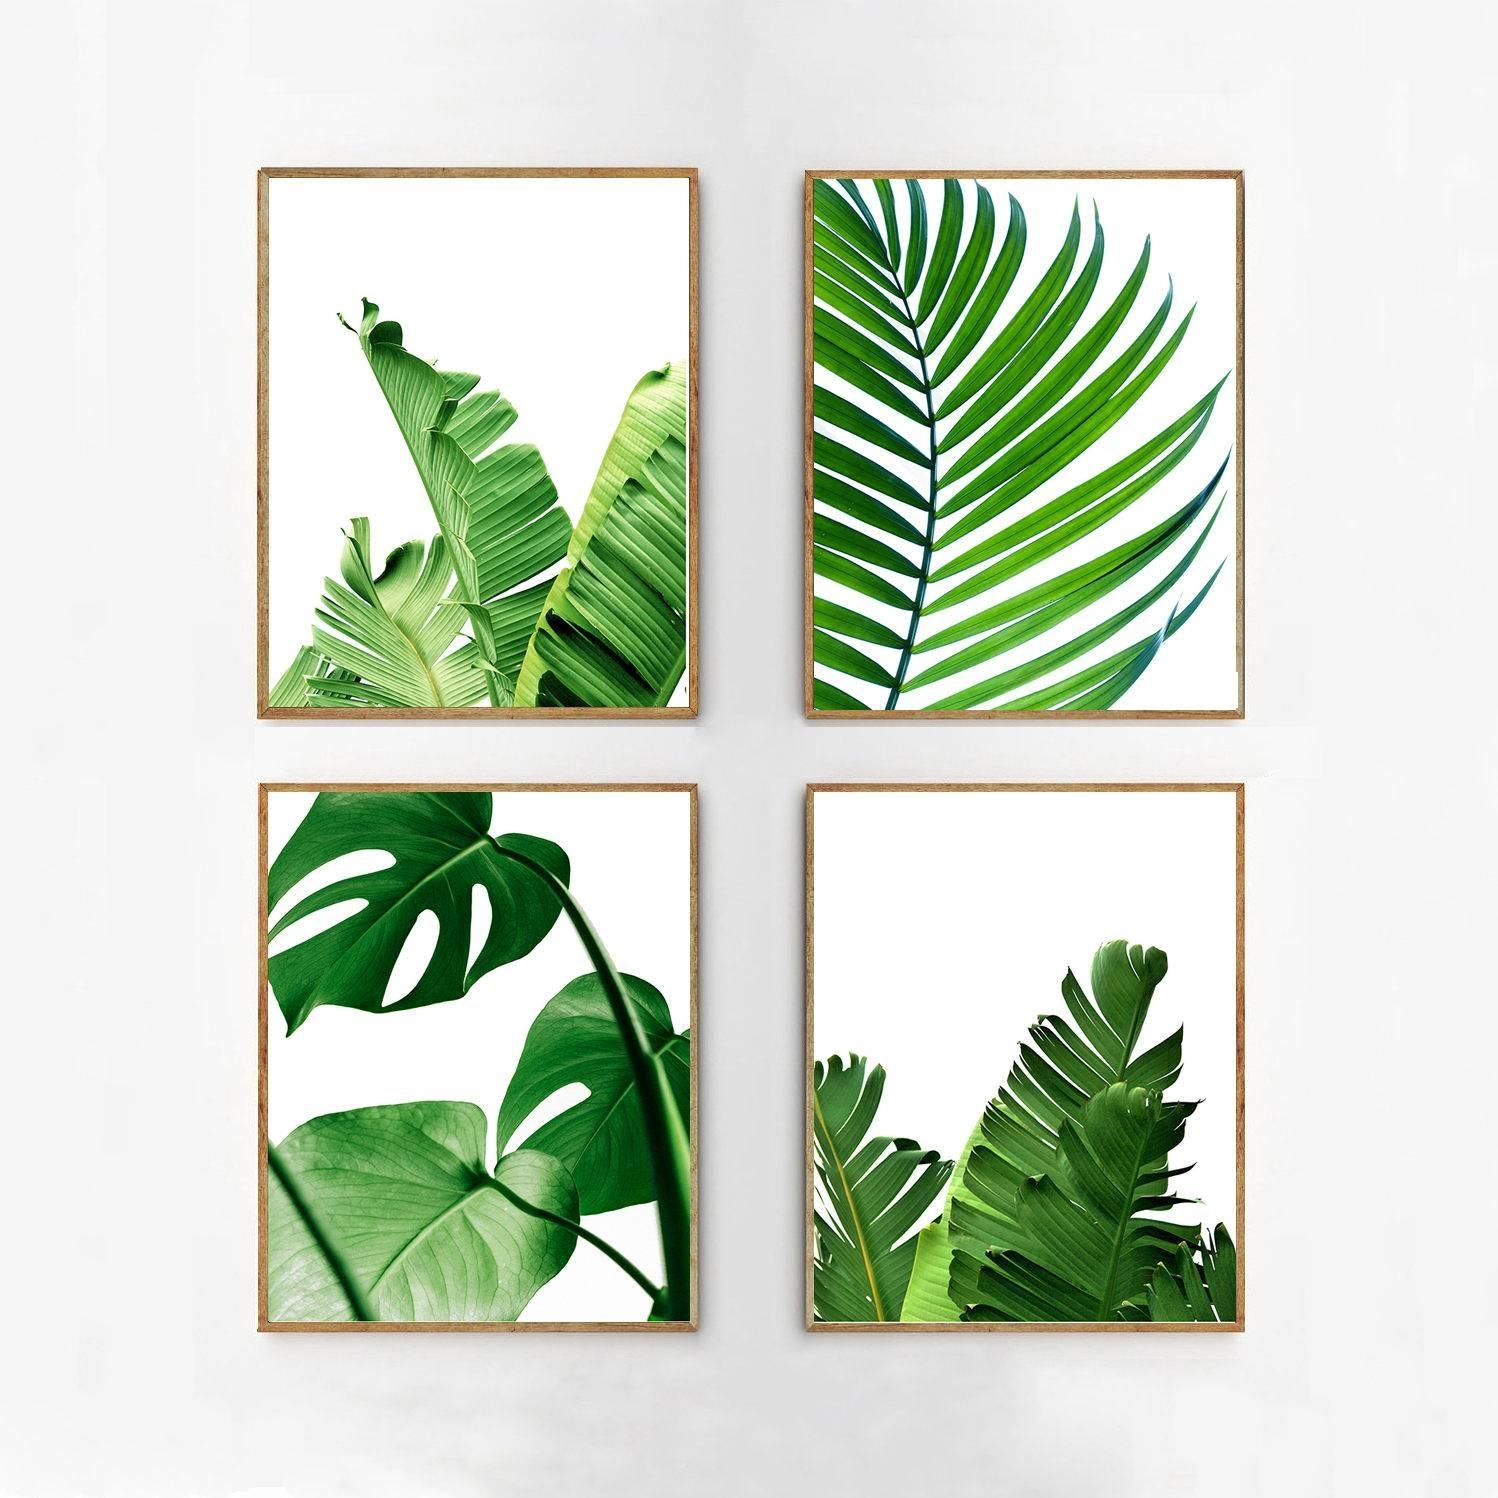 17 Wall Art Leaves, Diy Paper Leaf Wall Art Diy Craft For Desford Leaf Wall Decor By Charlton Home (View 20 of 30)